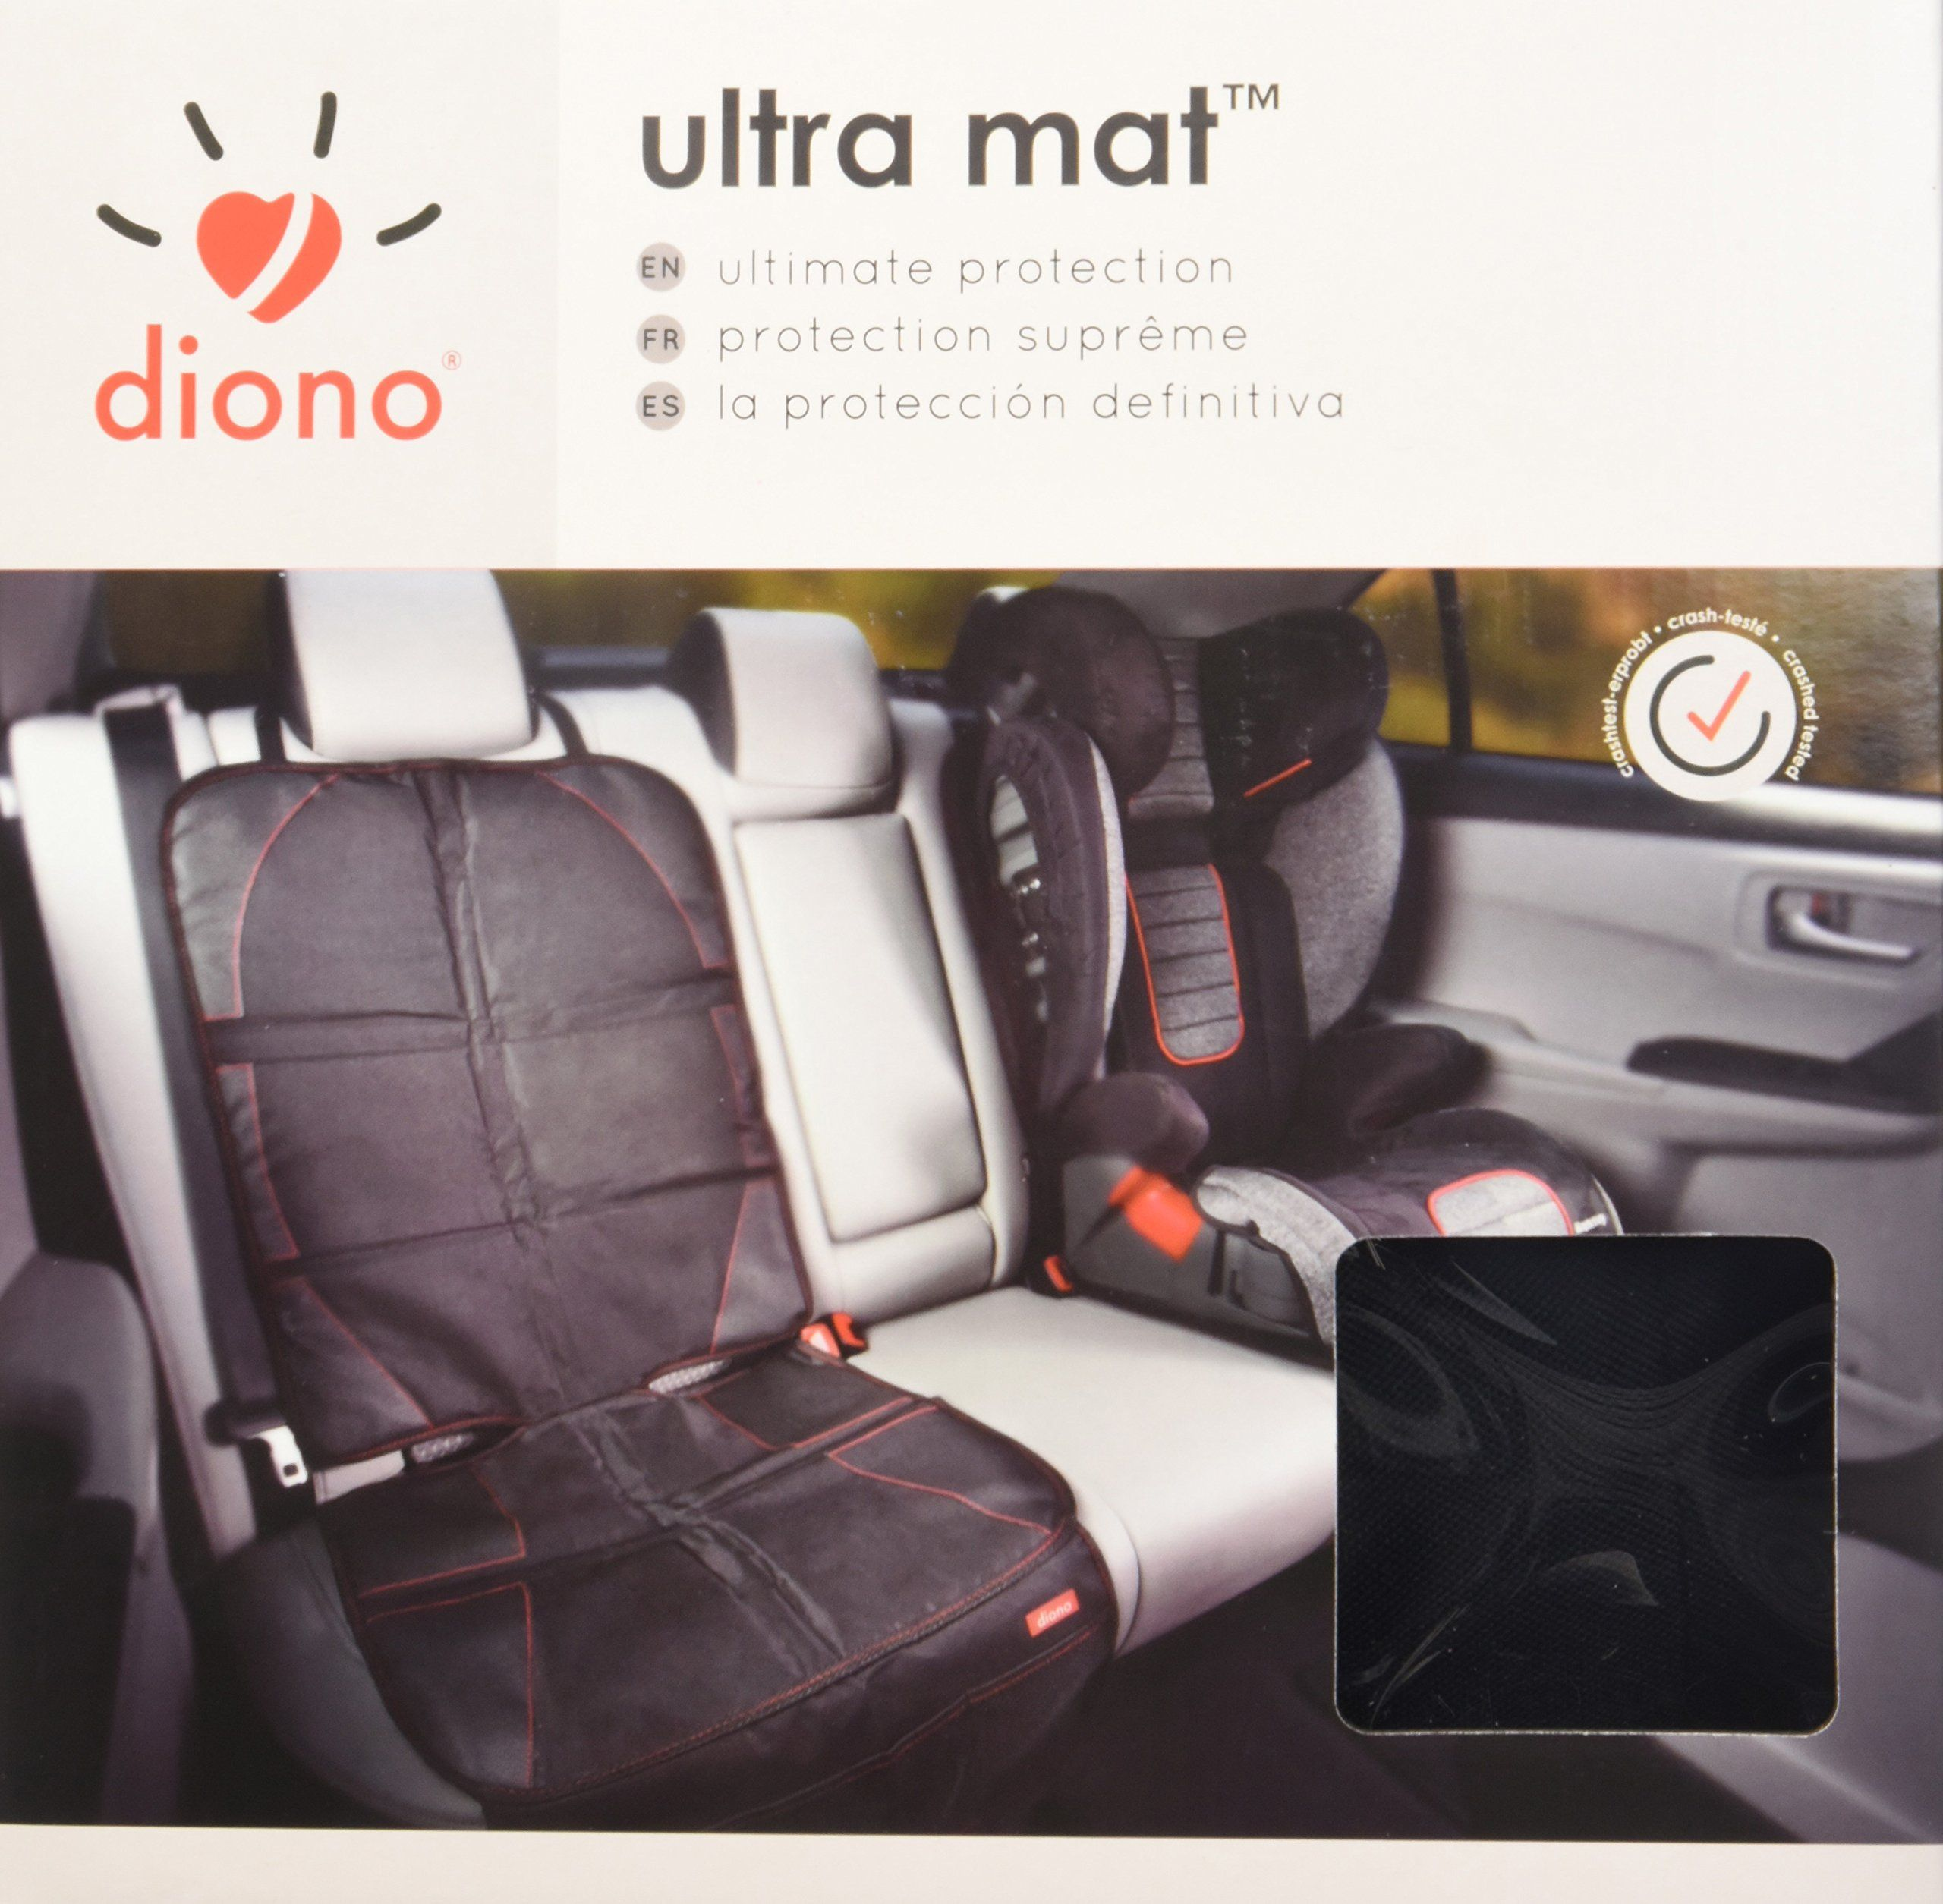 Diono Full Size Seat Univeral Protector Ultra Mat Protects Car Upholstery From Scratches Dents Wear And Tear Wa Car Seats Child Car Seat Car Seat Protector